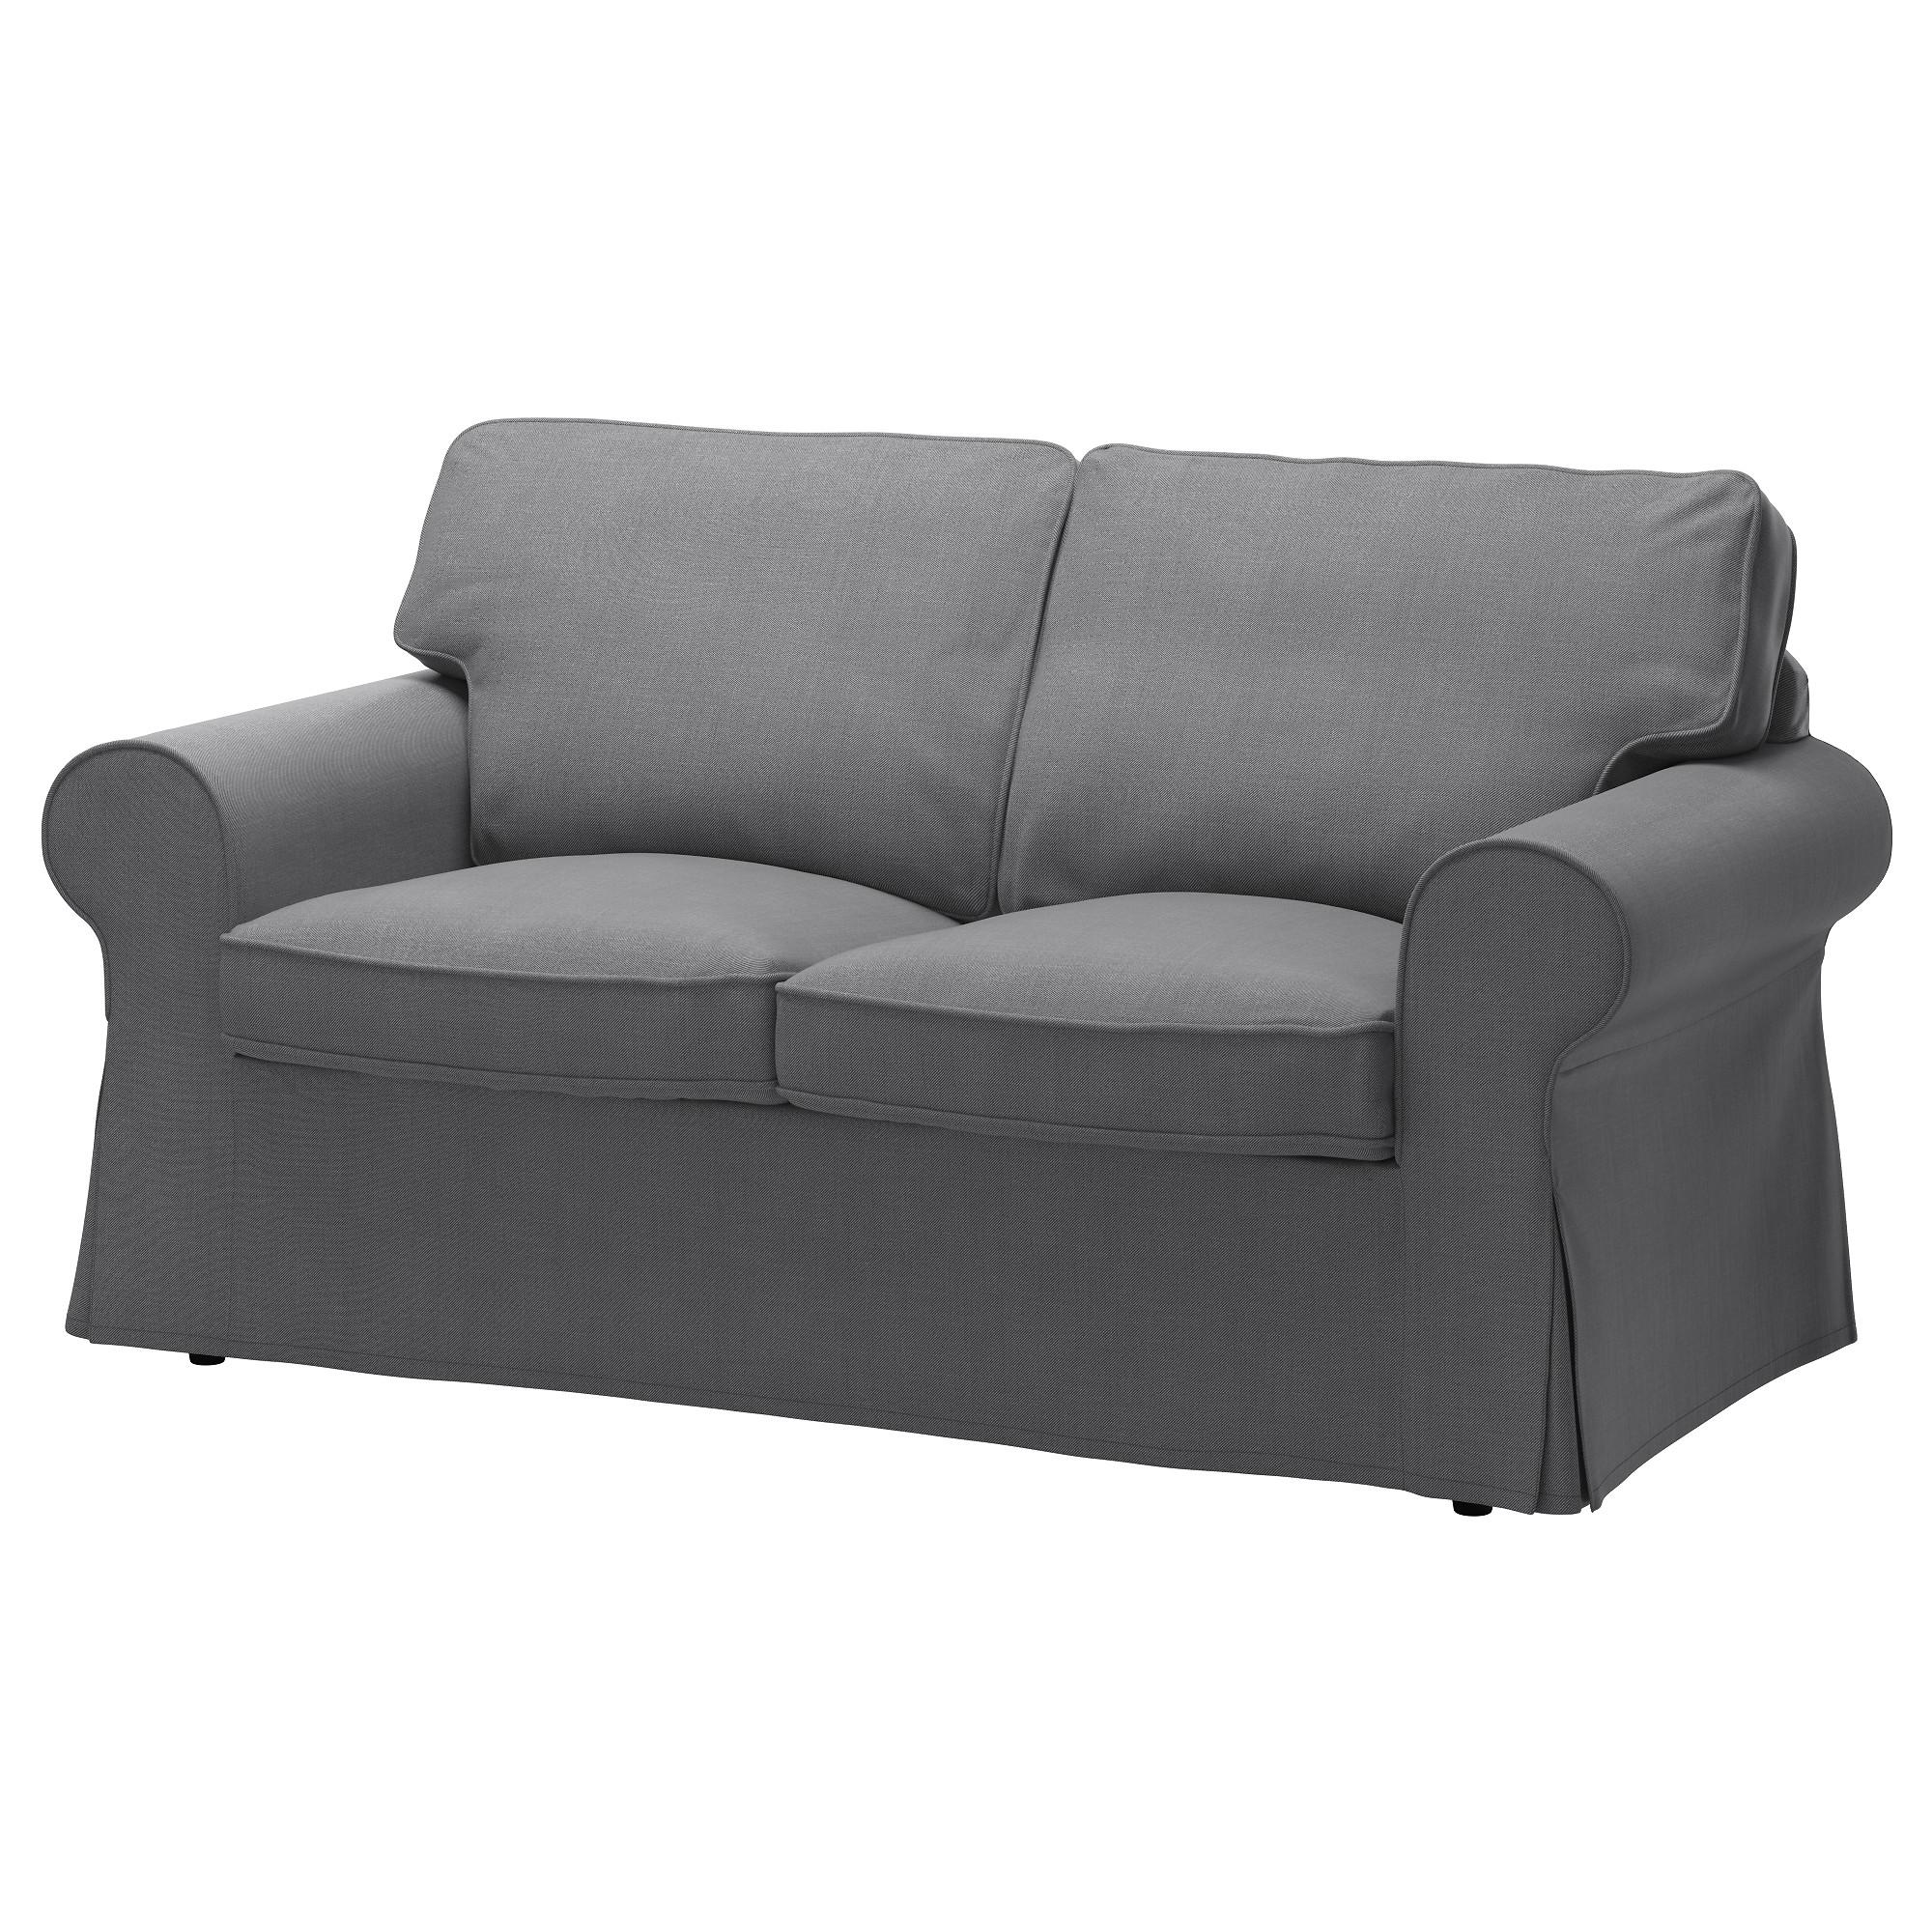 Small Sofa & 2 Seater Sofa | Ikea Within Two Seater Sofas (Image 18 of 20)